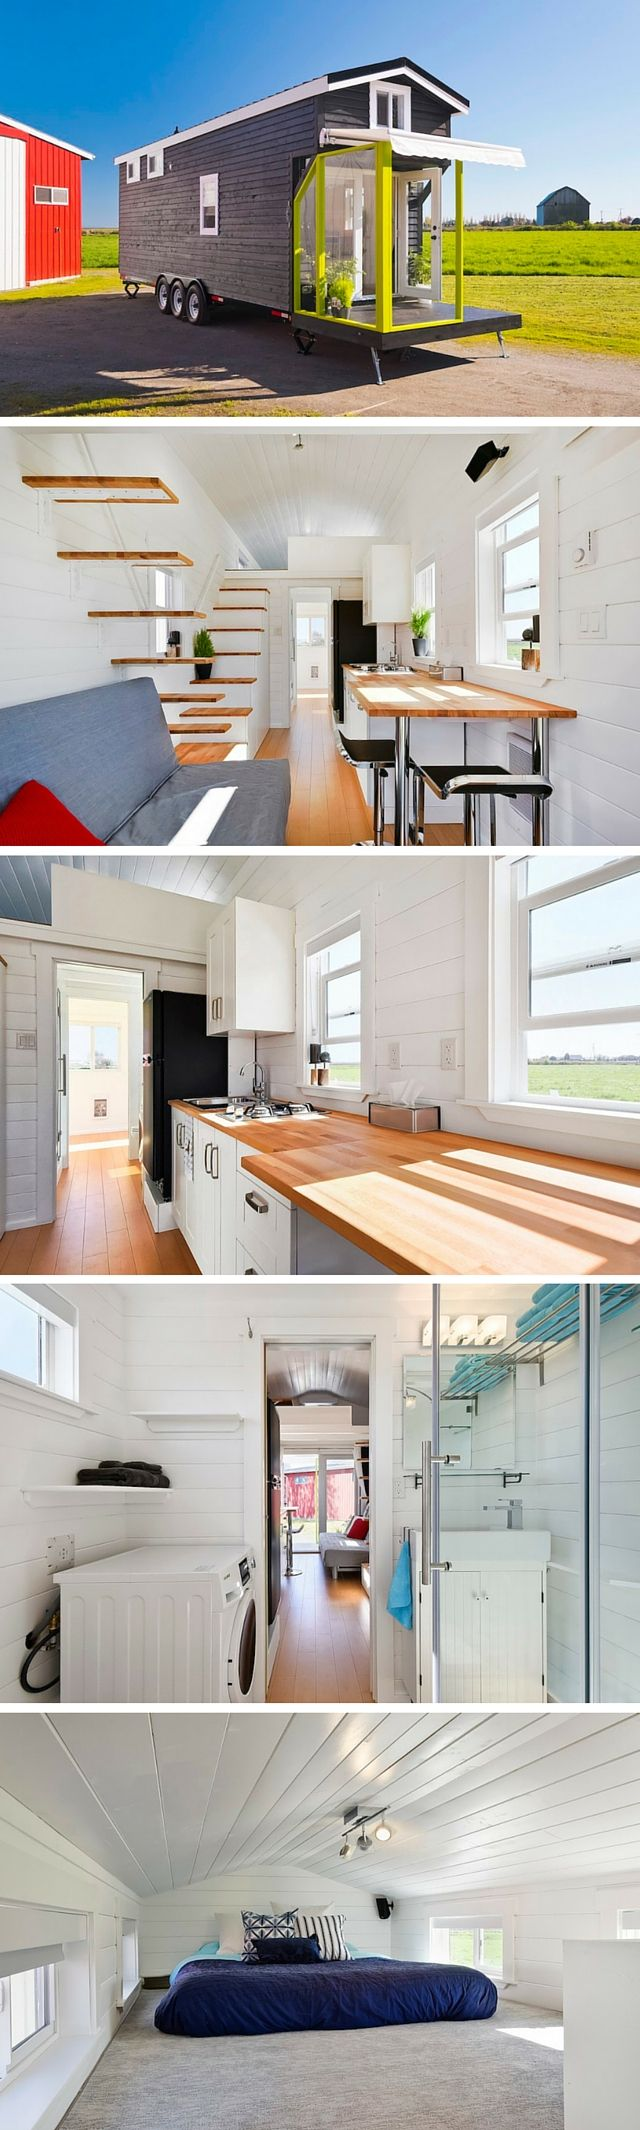 A custom tiny house on wheels from Tiny Living Homes. This 310 sq ft home has…